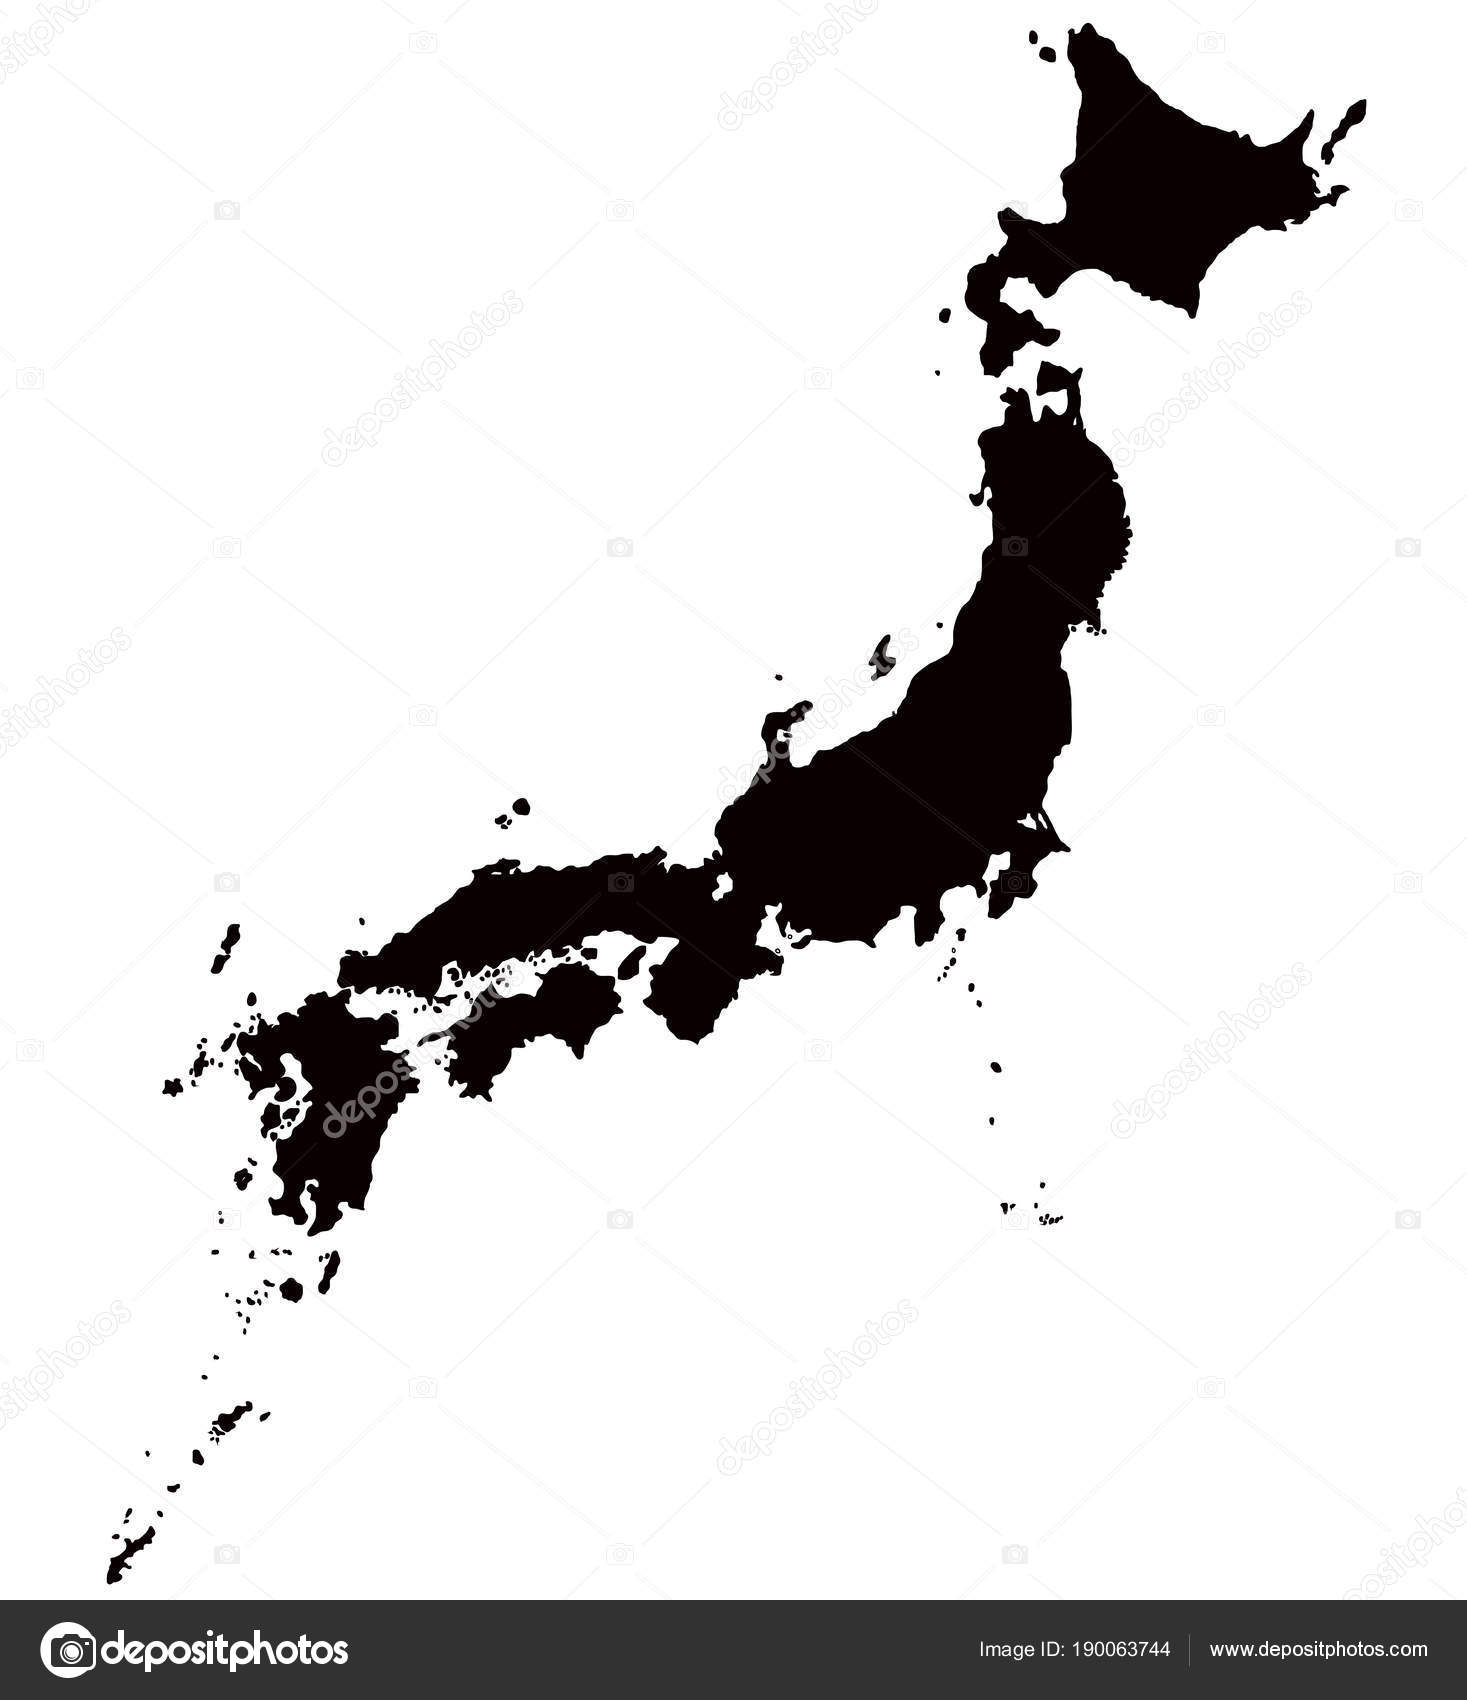 Japan map outline vector — Stock Vector © 1000pixels #190063744 on italy map, united states map, japanese map, iraq map, india map, france map, australia map, saudi arabia map, far east map, united kingdom map, germany map, brazil map, russia map, africa map, america map, california map, korea map, canada map, europe map,